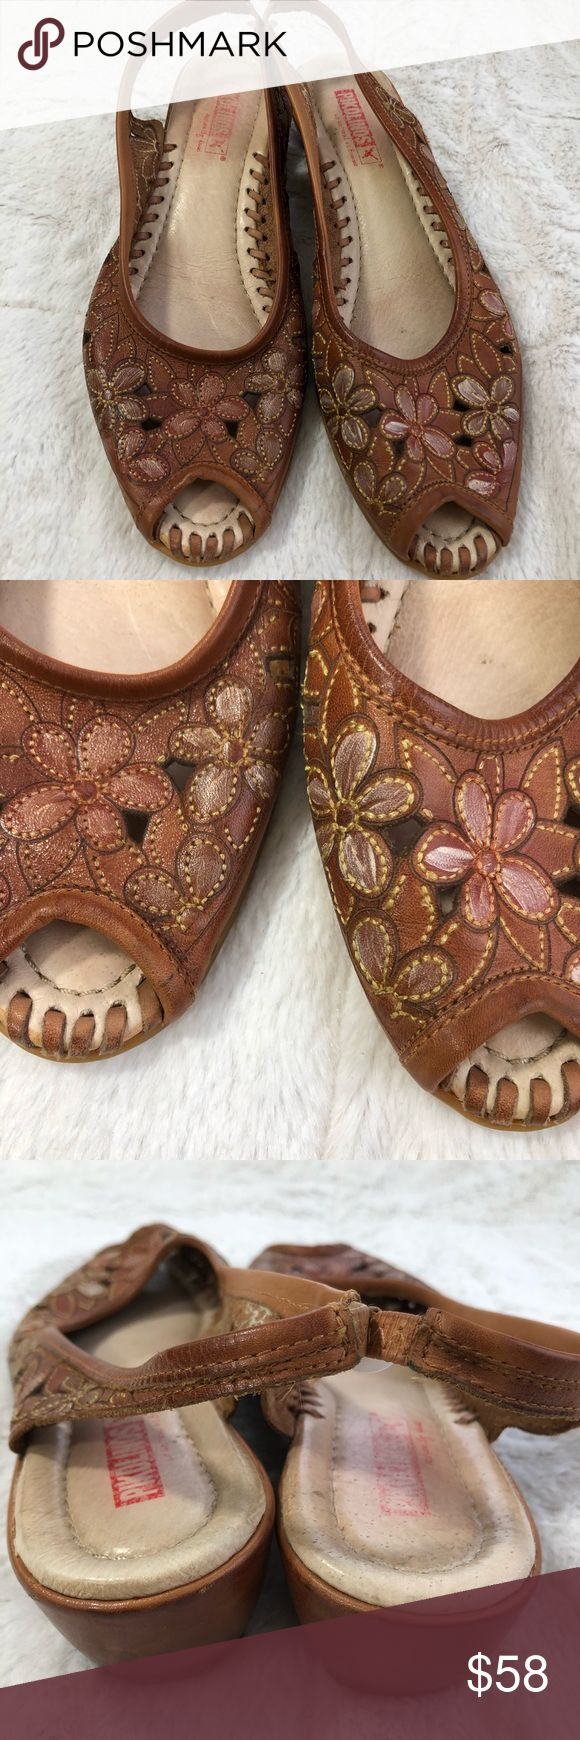 🌍Pikolinos Leather Floral Slingback Peep Toe Pikolinos Leather Floral Slingback Open Toe Sandal  These super high quality sandals are pretty impressive- shoes just aren't often made this way anymore. Beautiful floral open detail in tan/brown leather, with a leather laced construction that will stand the test of time. Very low heel. Spanish shoe manufacturer that specializes on n high quality product while making a positive impact on underdeveloped communities and minimizing their…